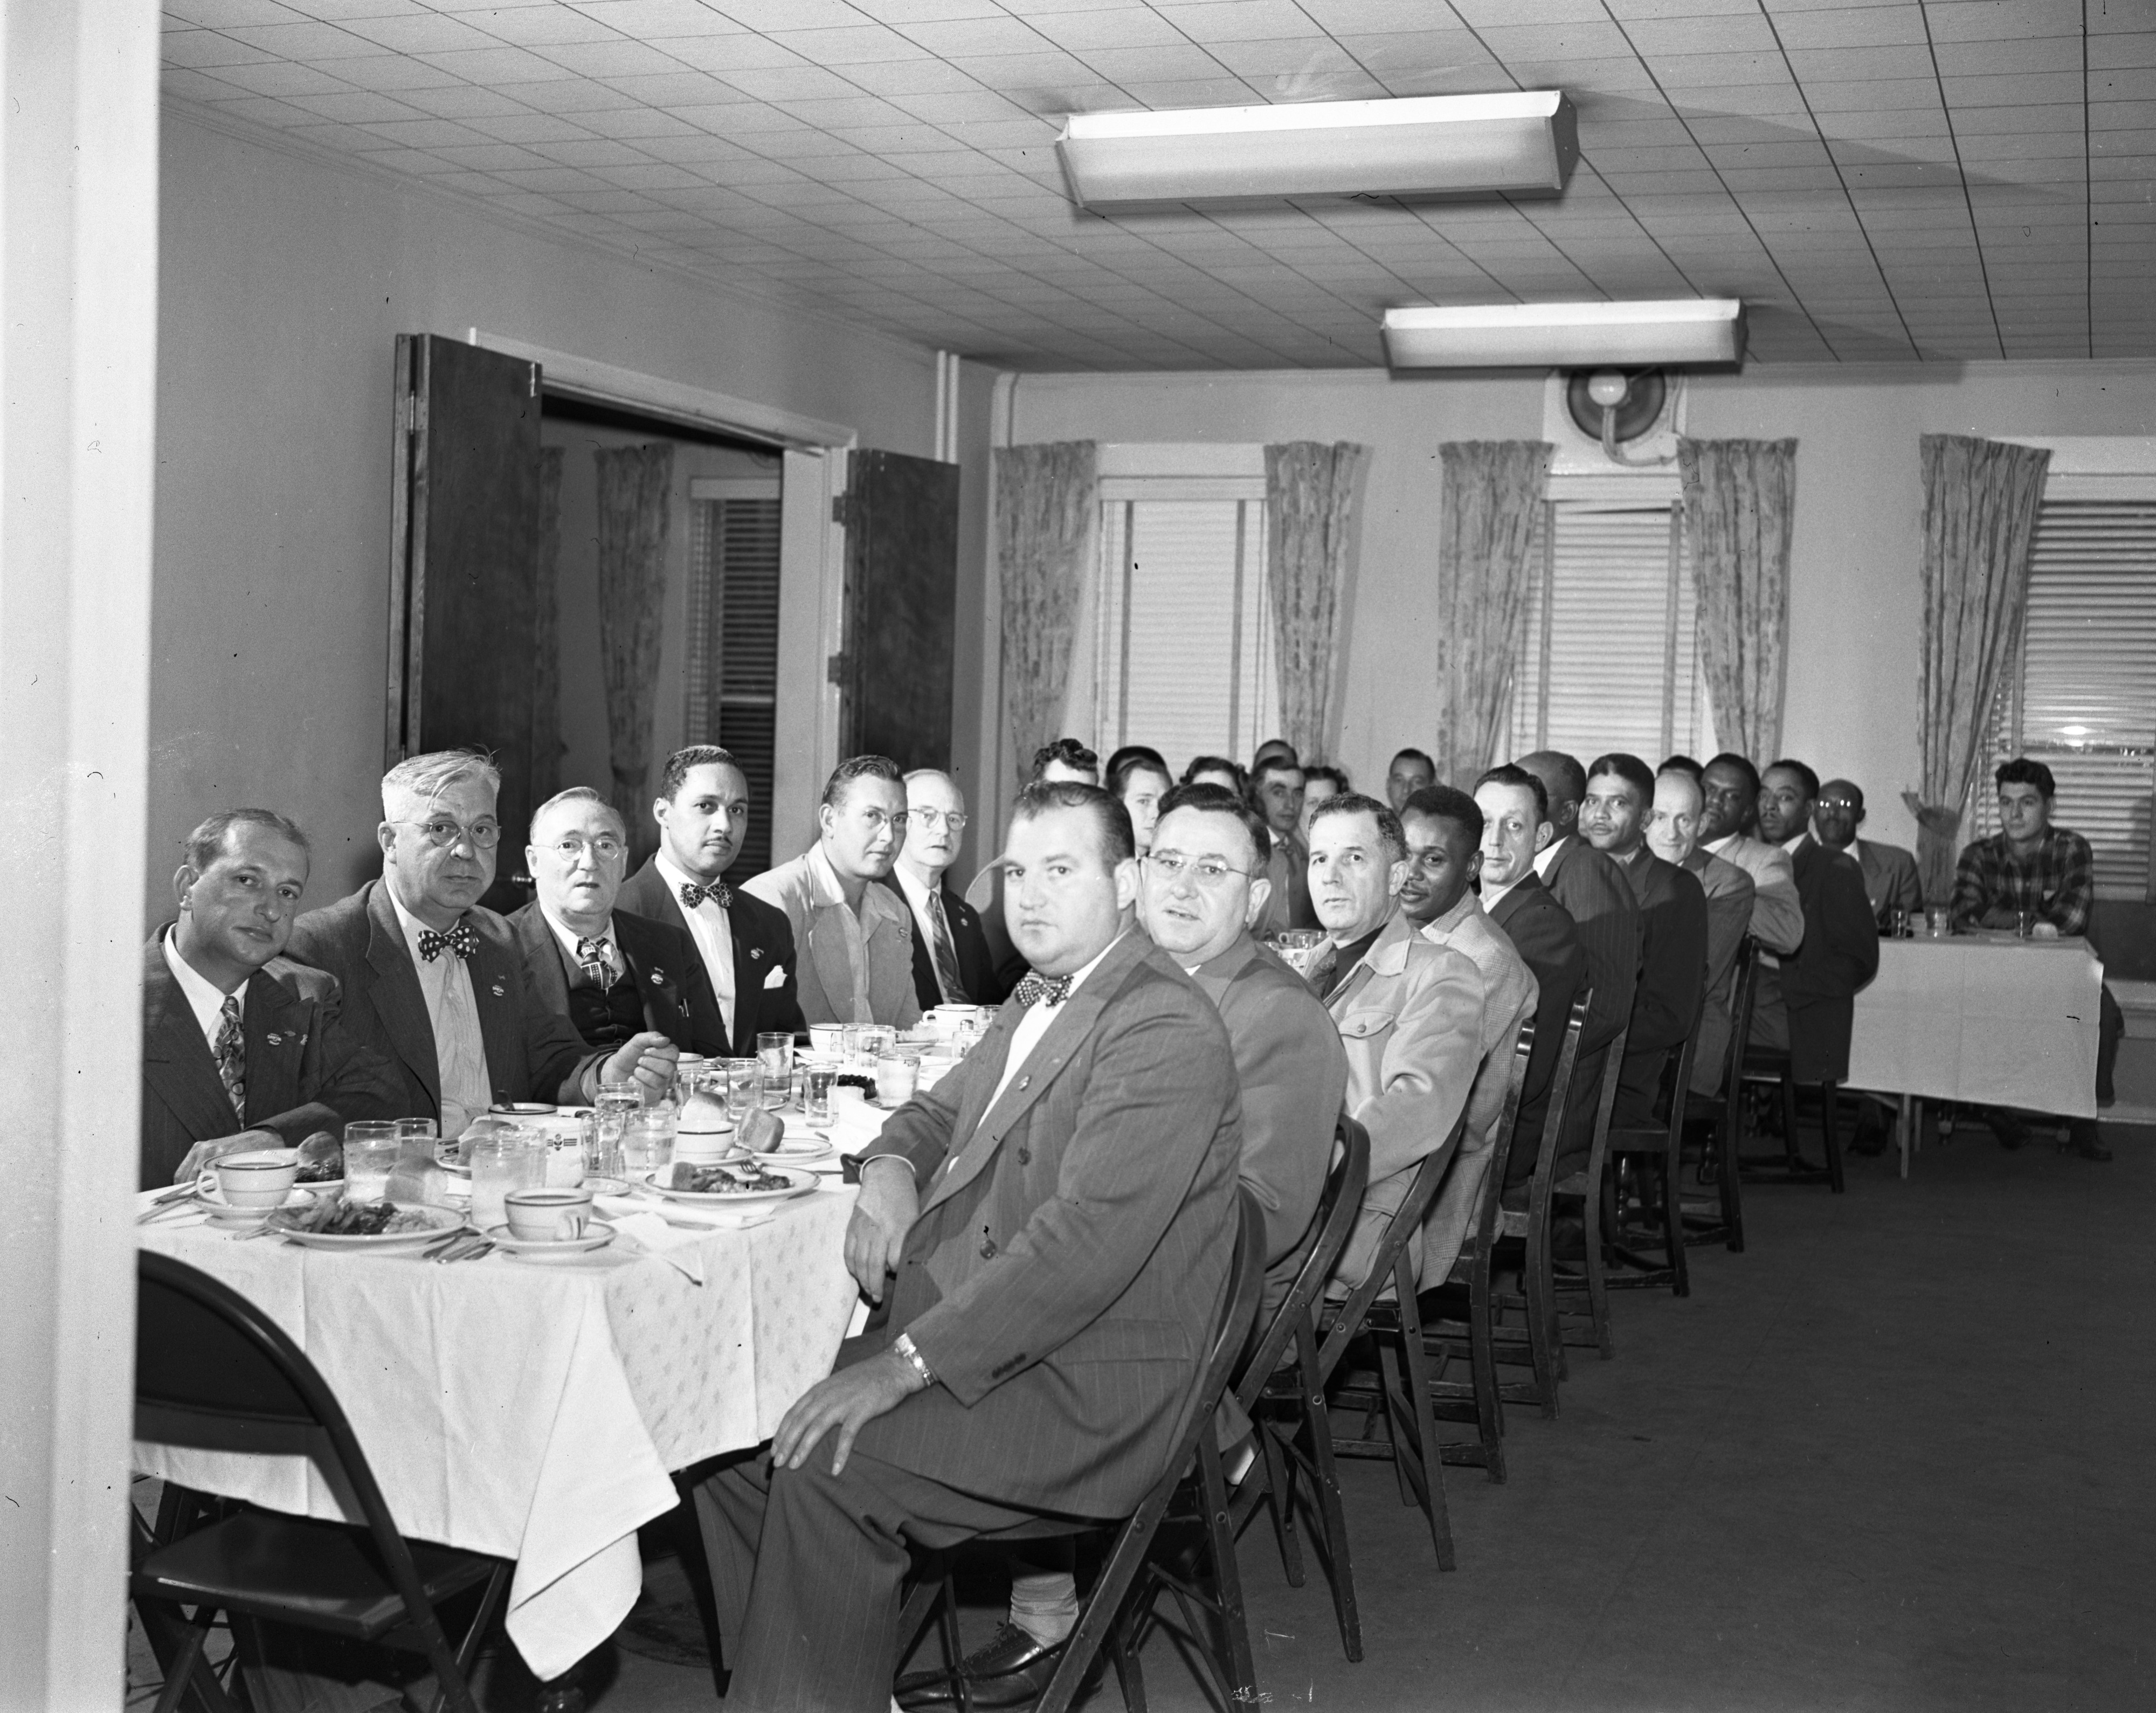 Union leaders hold a reorganization meeting at the Allenel Hotel, October 1950 image